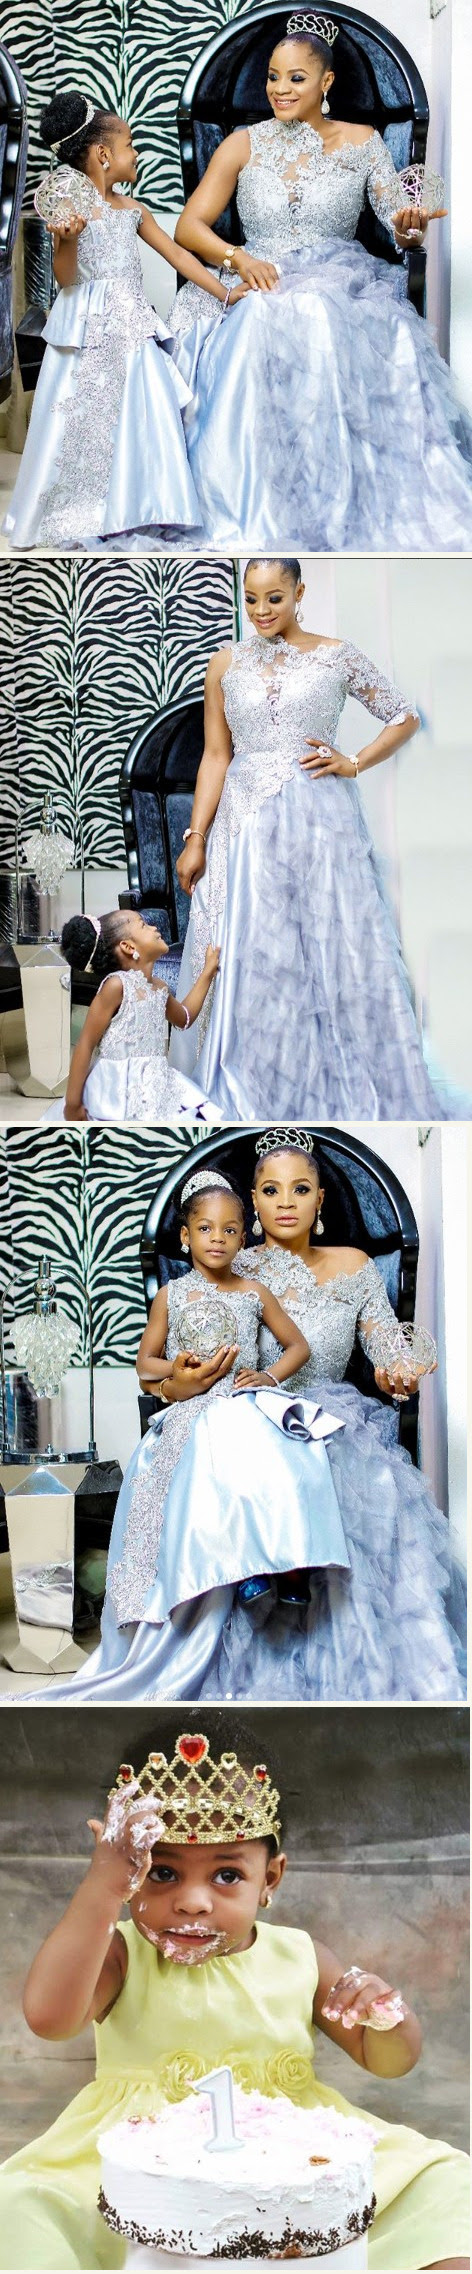 Lovely Photos Of Actress Uche Ogbodo And Daughter In Matching Outfits